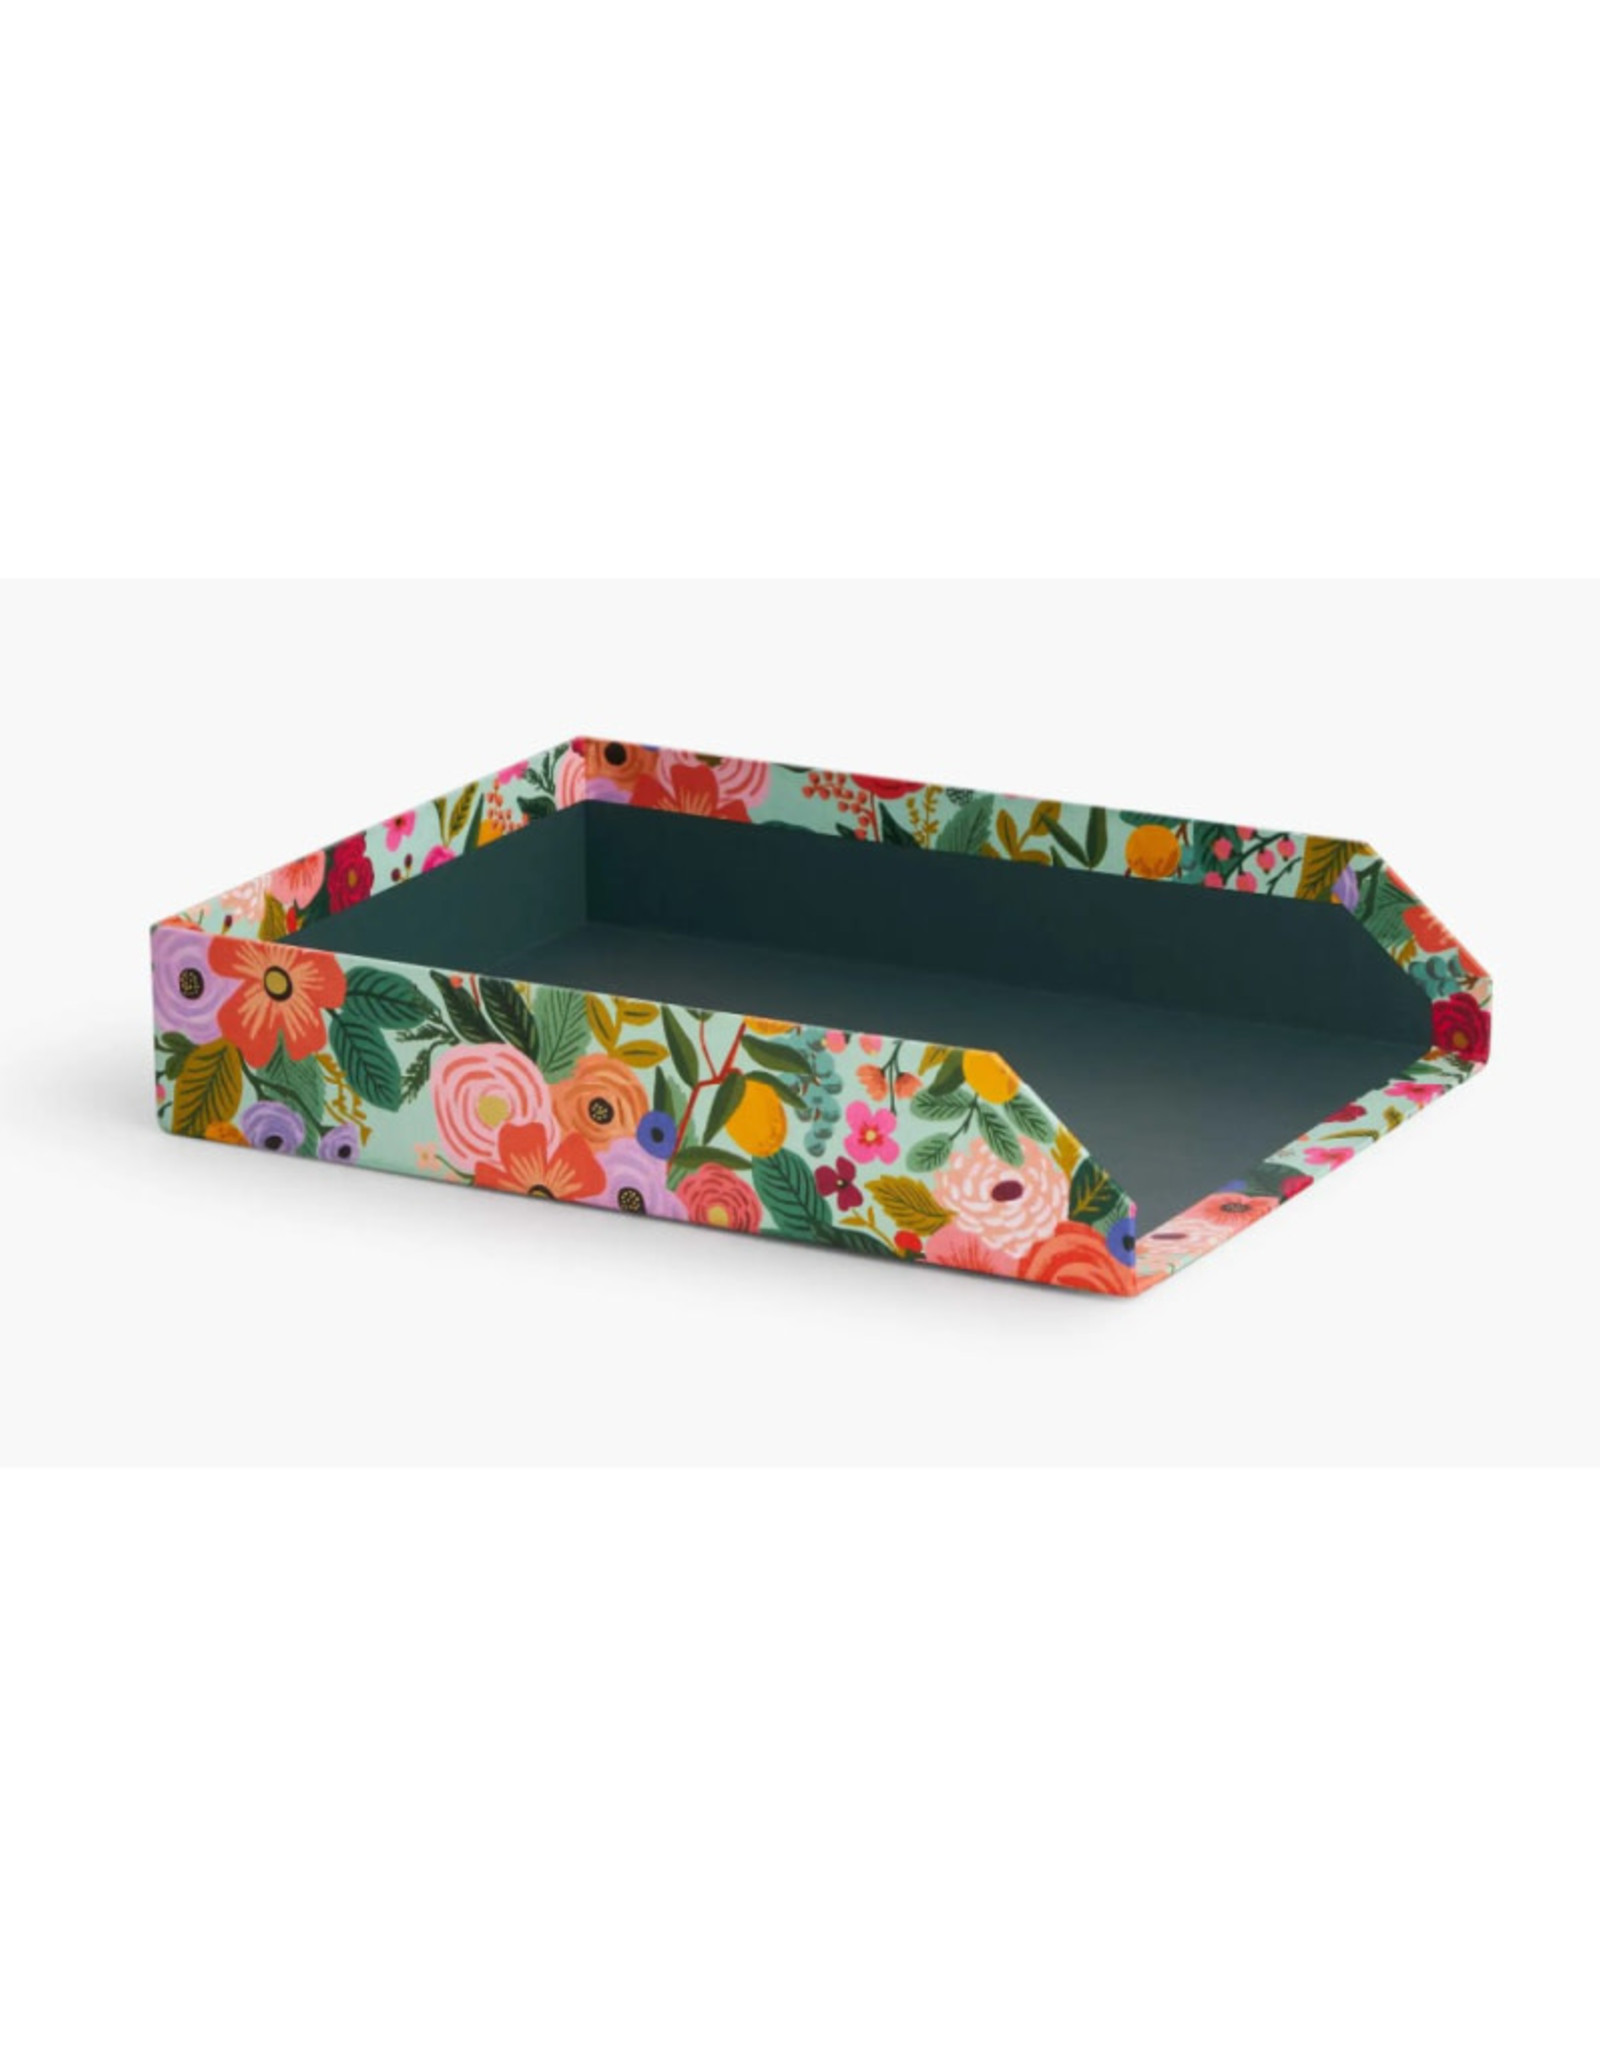 Letter Tray - Garden Party